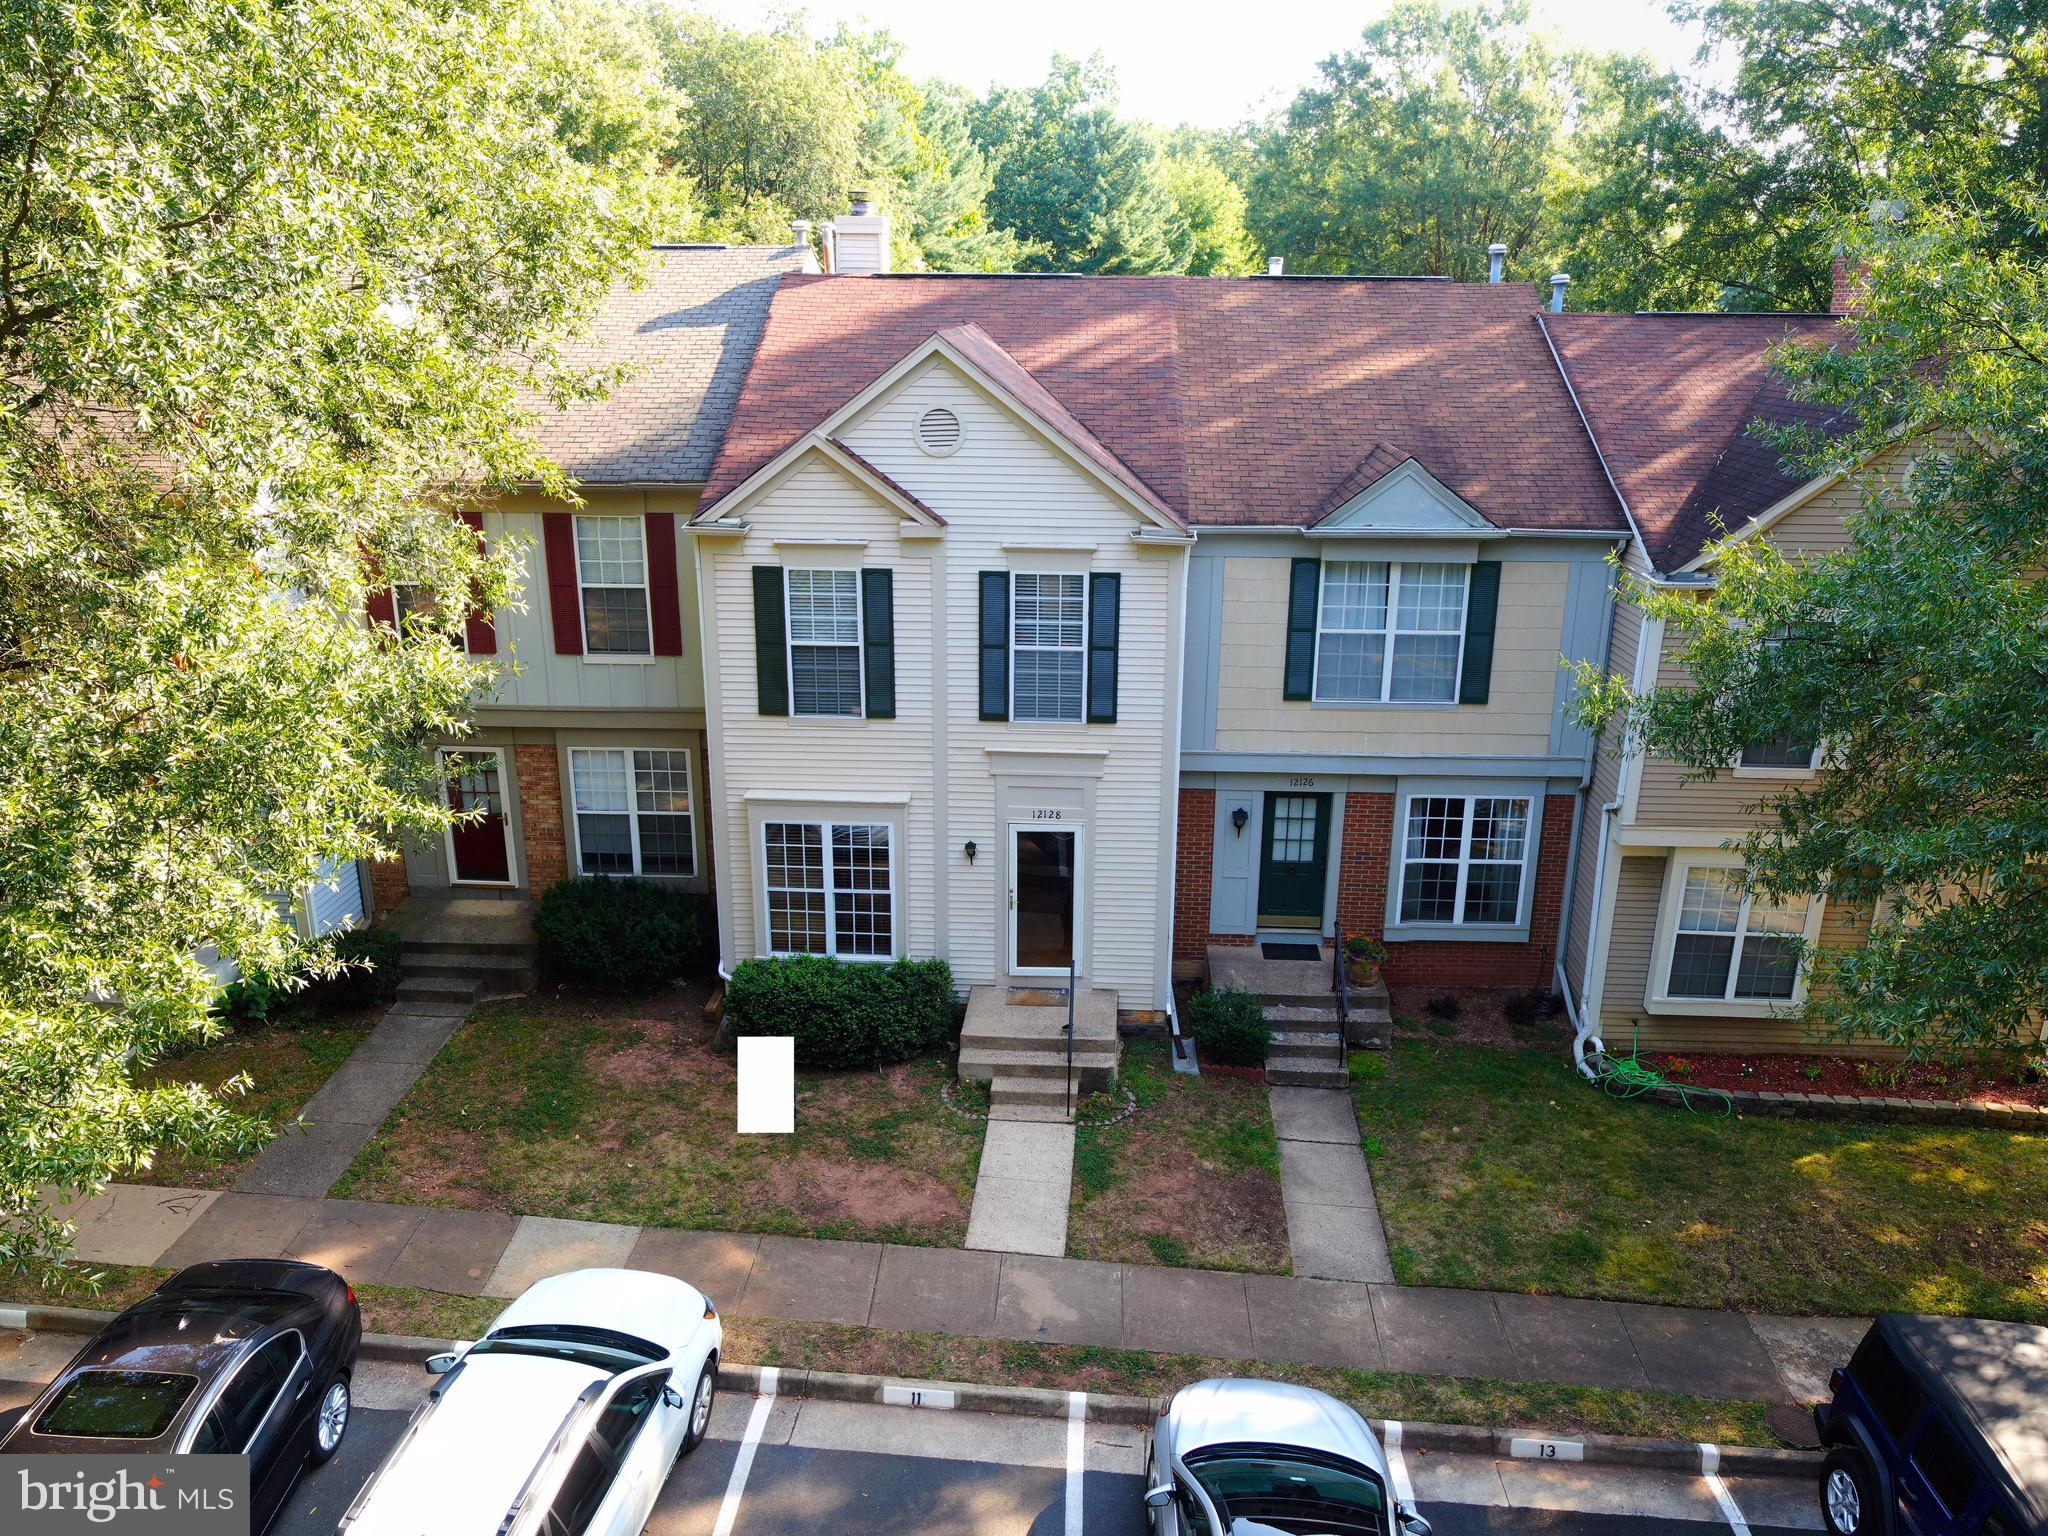 Spectacular Location! Tucked into the beautiful golf community of Penderbrook, this town home features a double Master Bedroom, hardwood floors in the main level & a large rear deck that's ideal for outdoor enjoyment.  Access to a community pool and golf course. Quick access to Rt. 50, Rt. 66, Dulles Toll Rd, Fair Oaks, Wegman's, Whole Foods and much more. Must see!